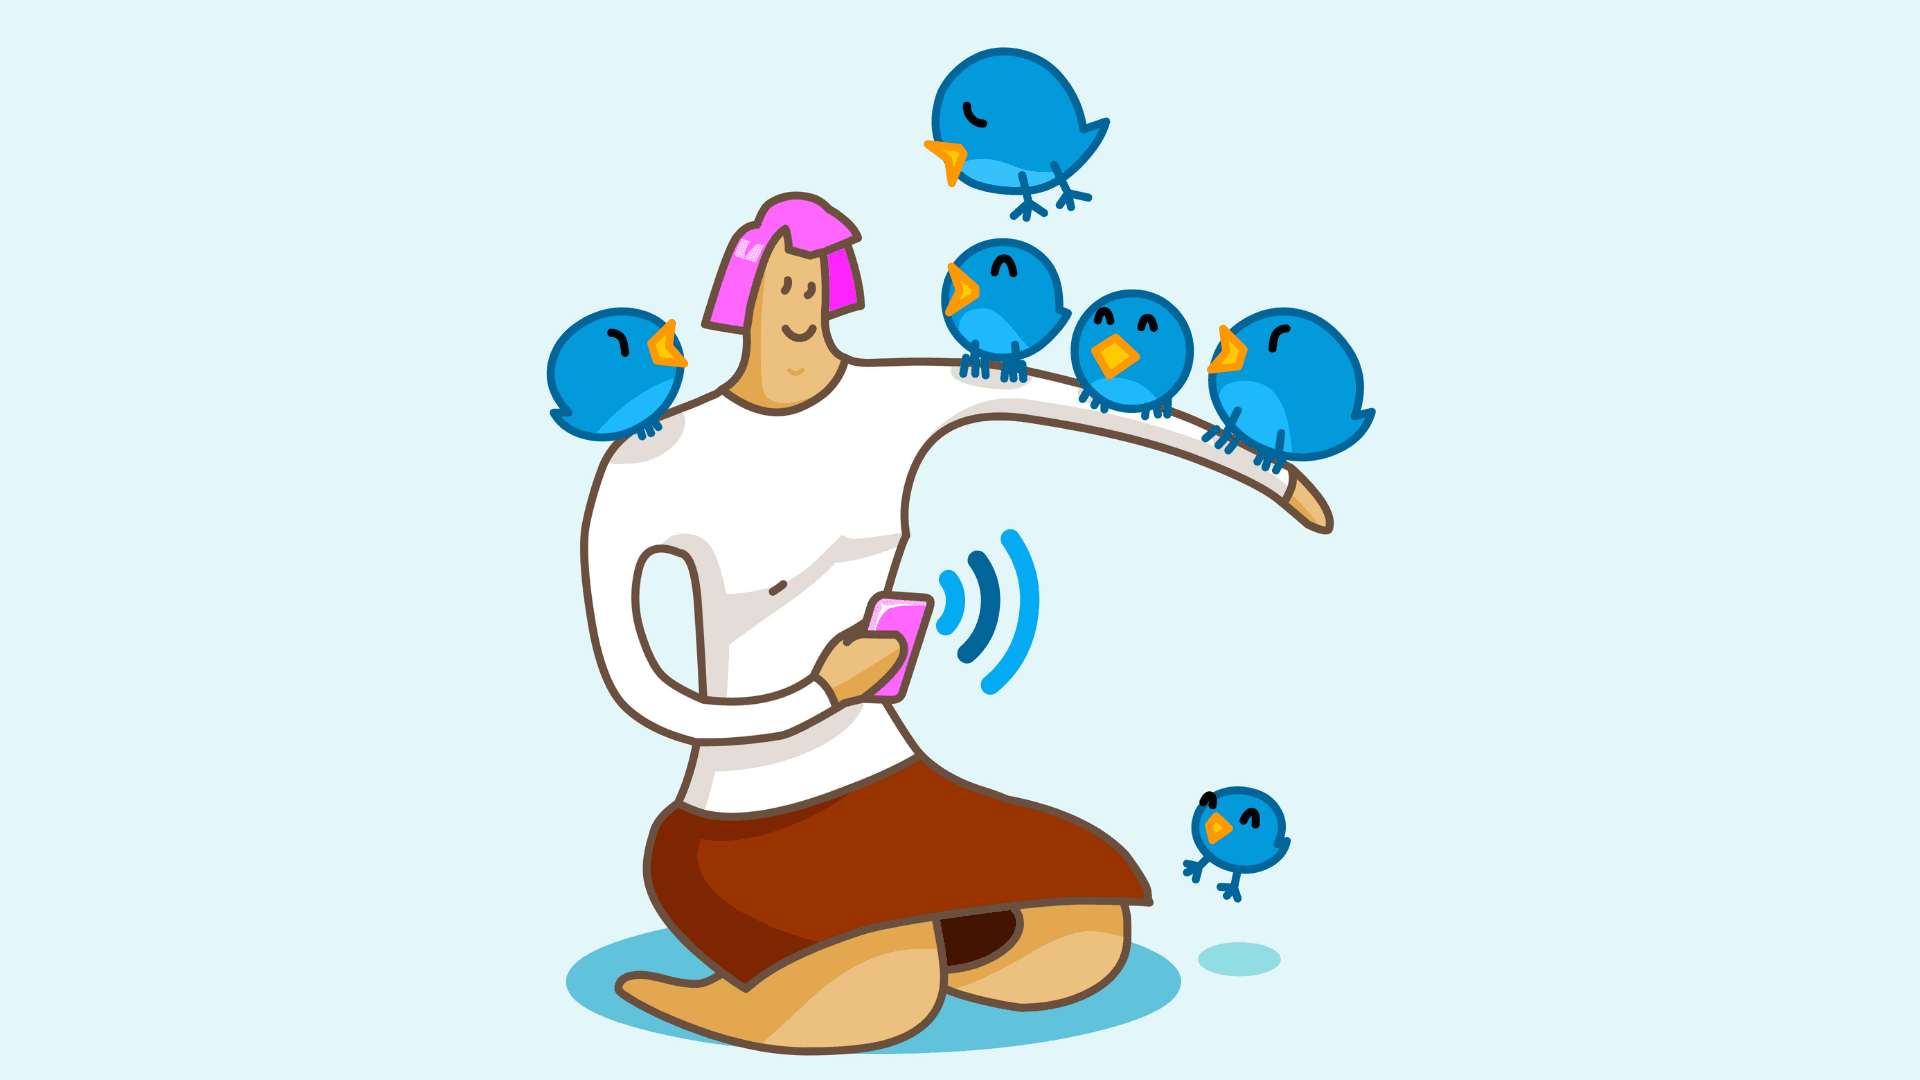 Twitter app promotion and marketing